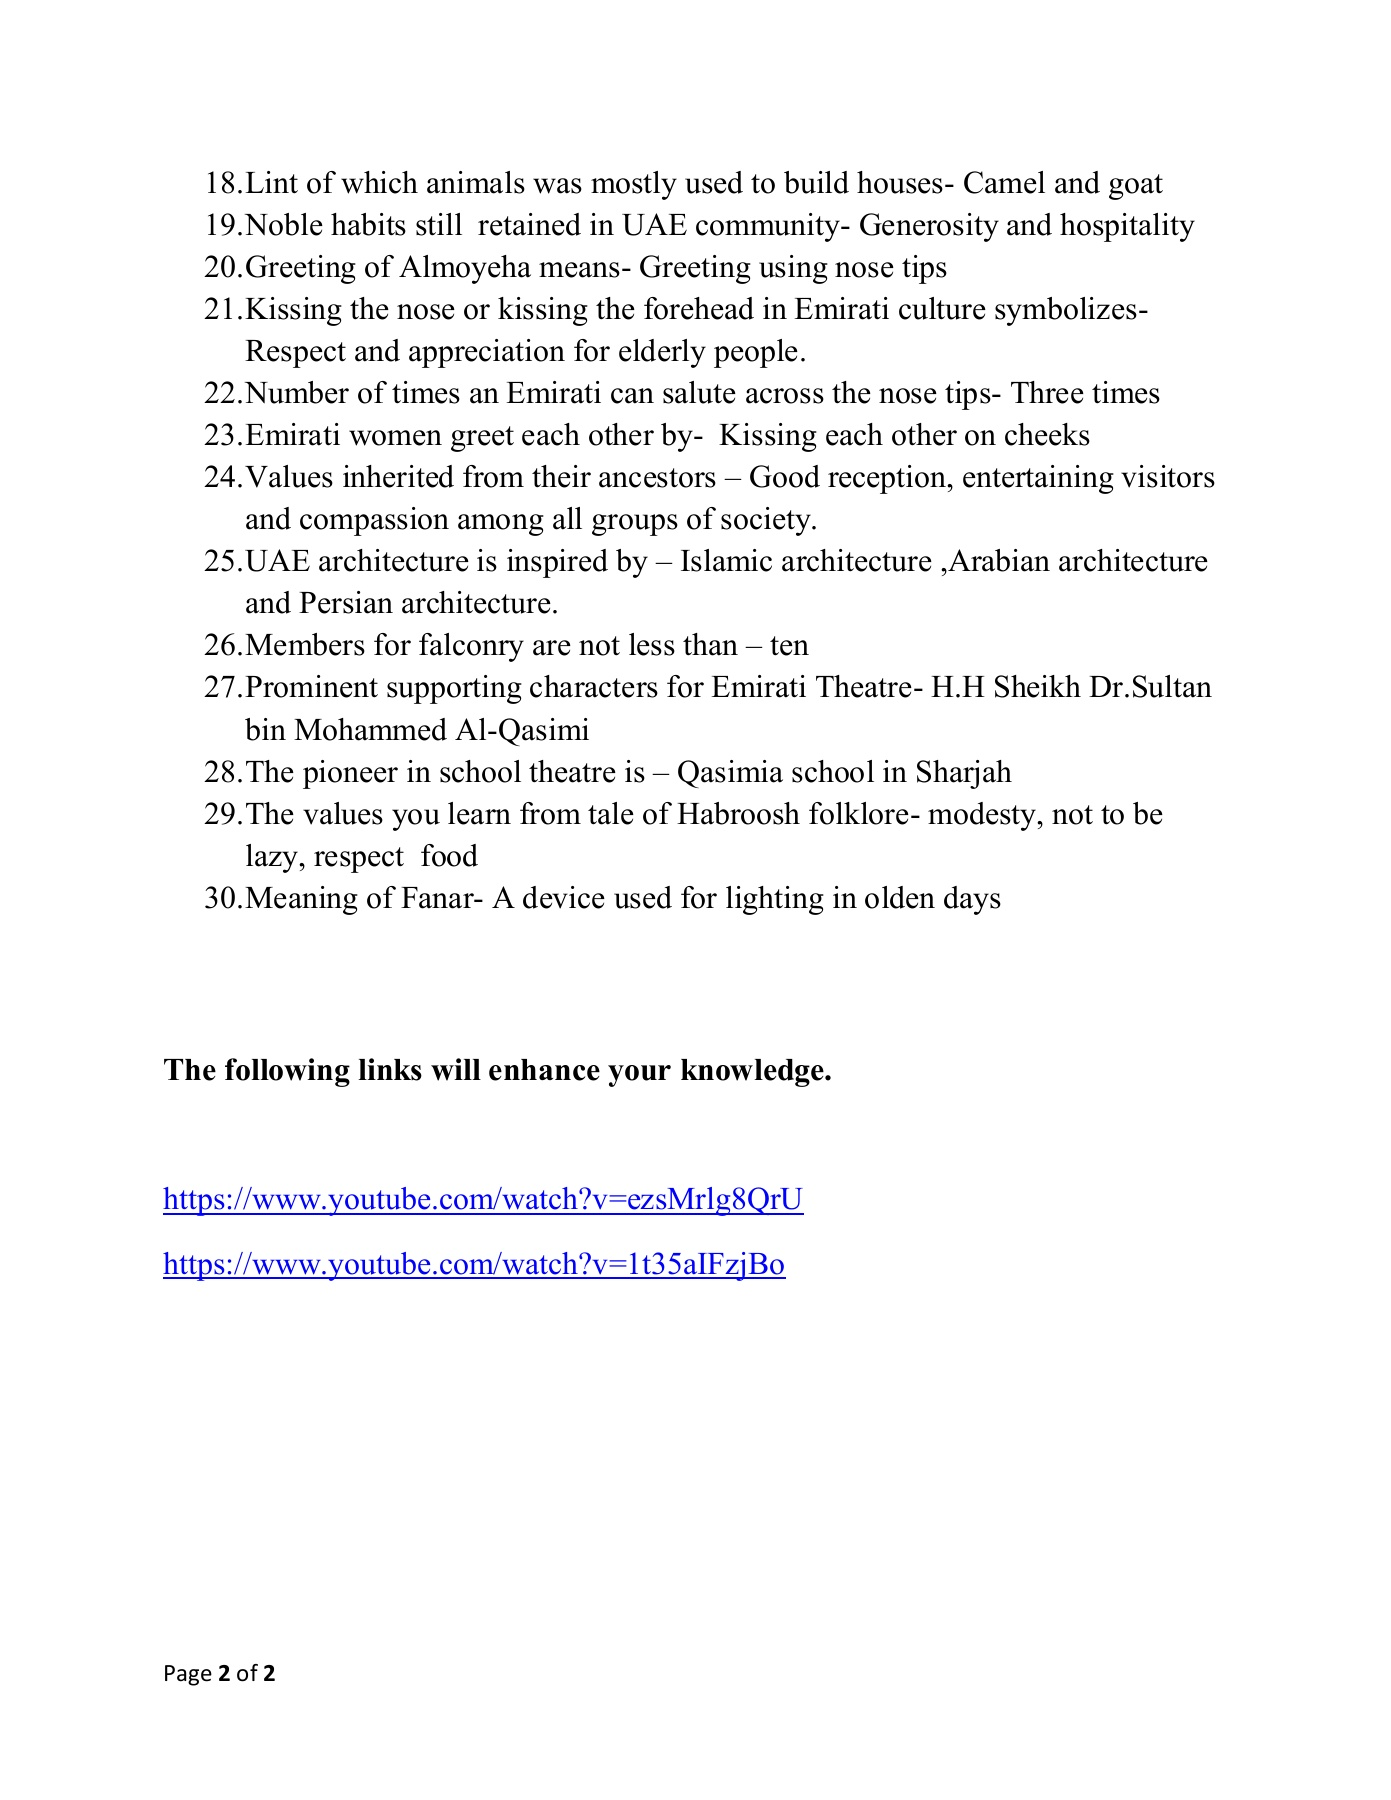 hight resolution of UAE SST Gr. 5 culture and heritage (1)-Flip eBook Pages 1 - 2  AnyFlip    AnyFlip